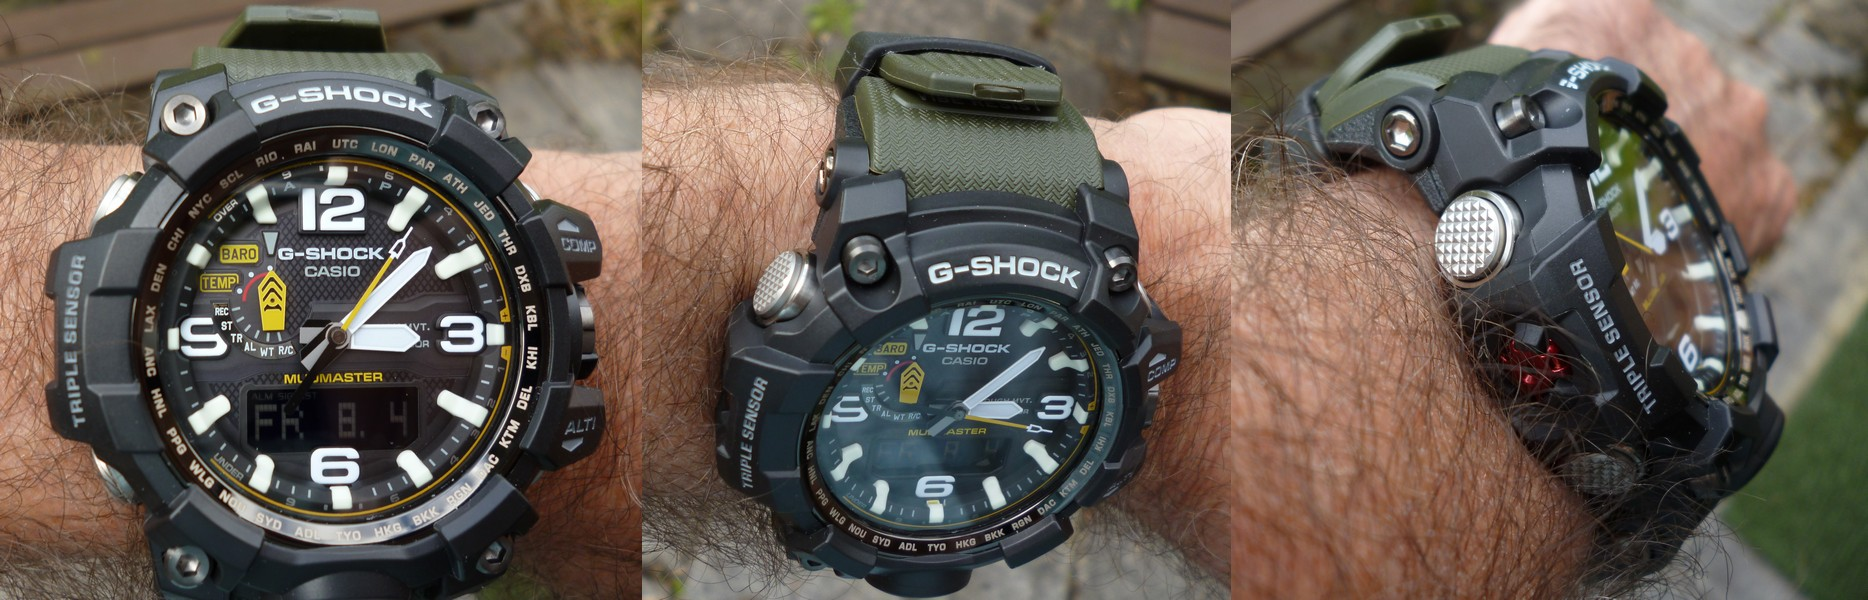 Name:  mudmaster strip.jpg